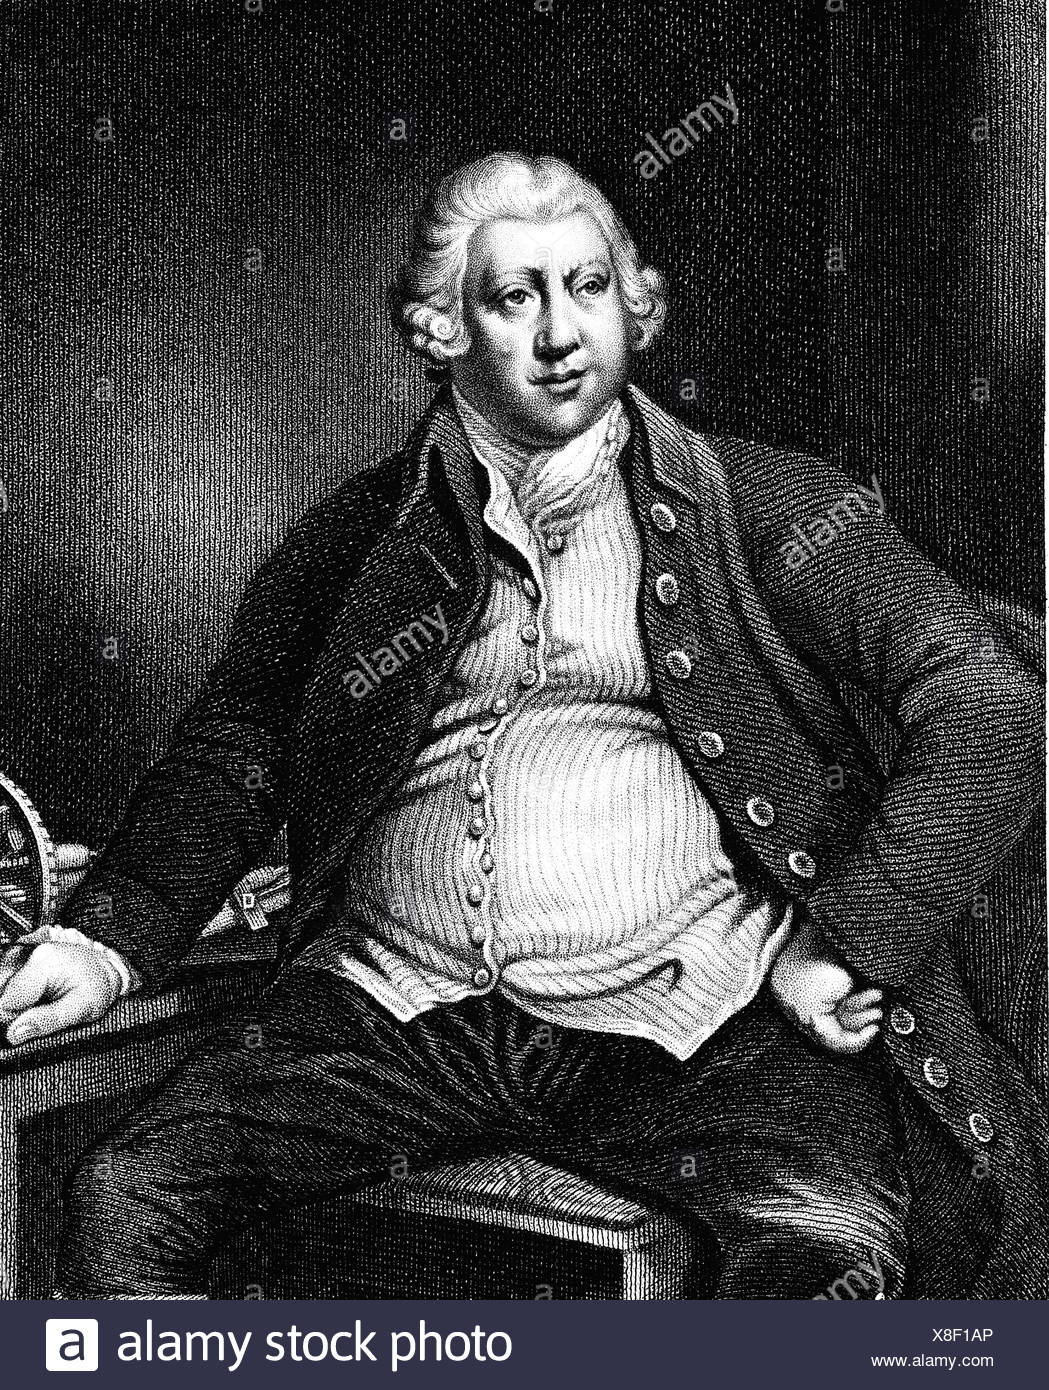 Arkwright, Richard, Sir, 23.12.1732 - 3.8.1792, British inventor and businessman, half length, steel engraving by Nordheim, before 1840, Artist's Copyright has not to be cleared - Stock Image